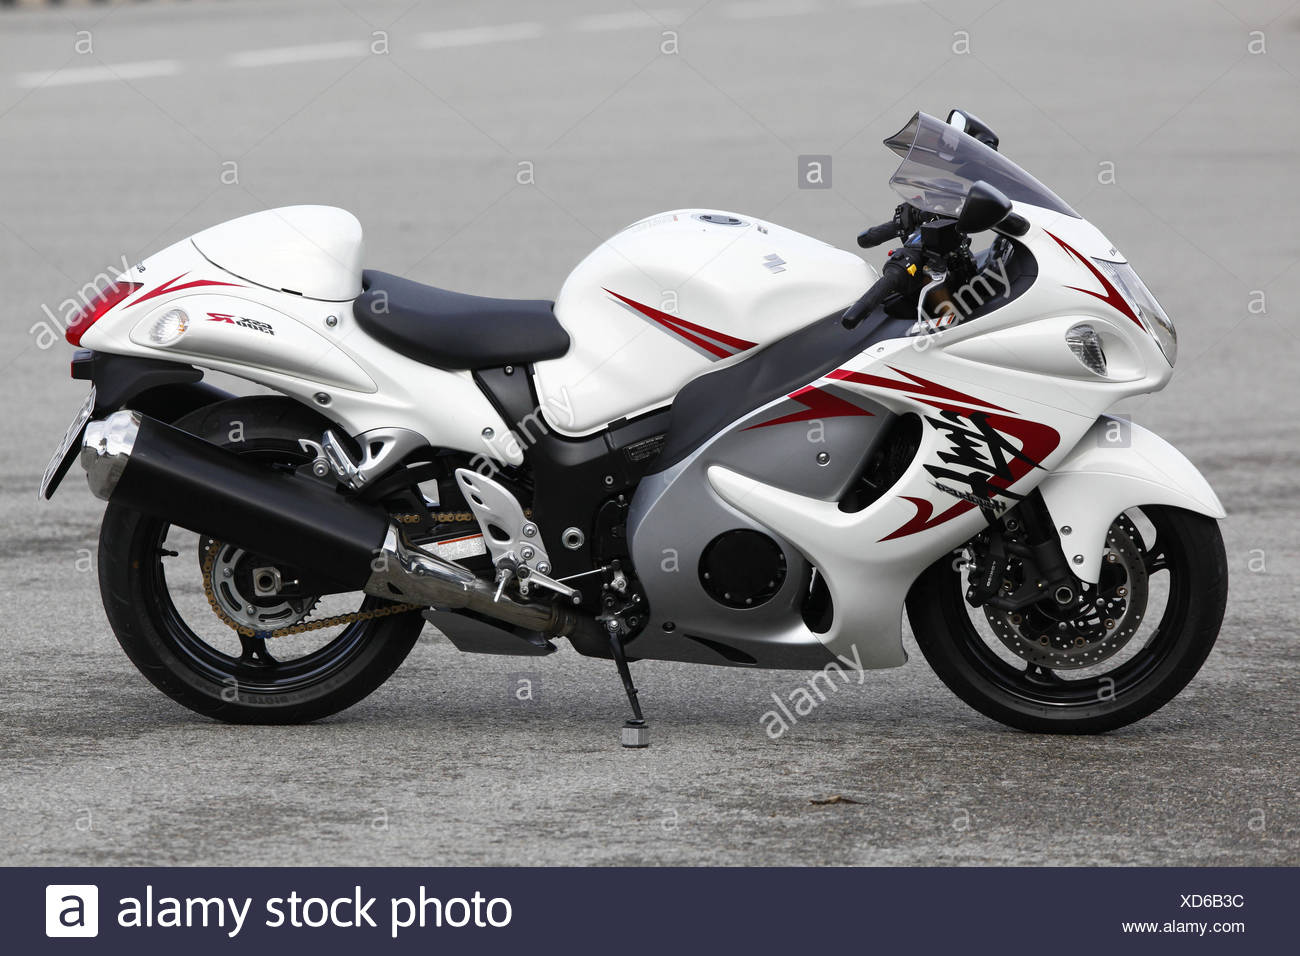 Motorcycle, Hayabusa GSX 1300 R, Sporttourer, vertical, left page, Stock Photo